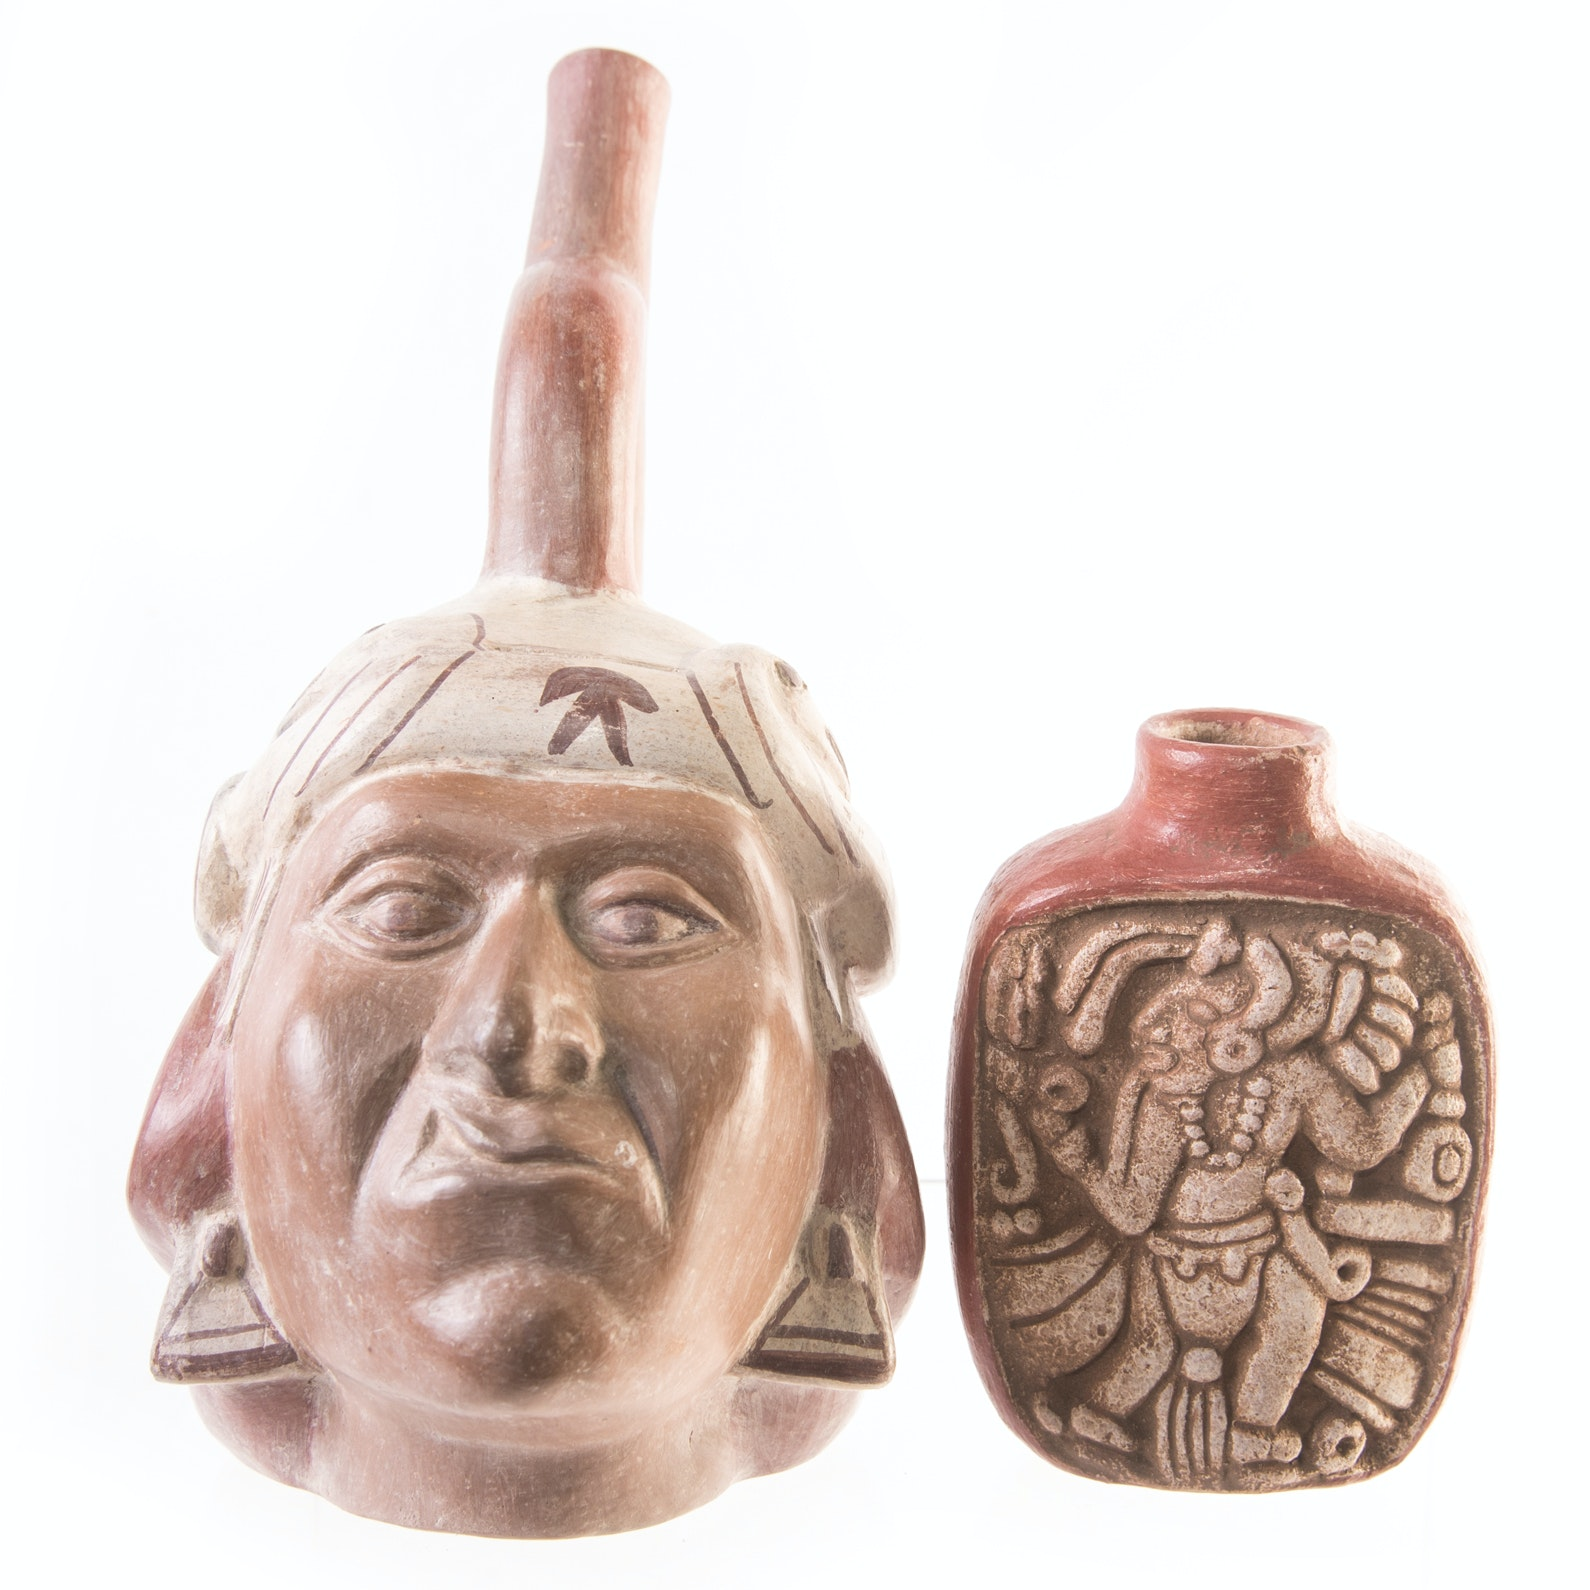 Peruvian Pottery including Portrait Vessel